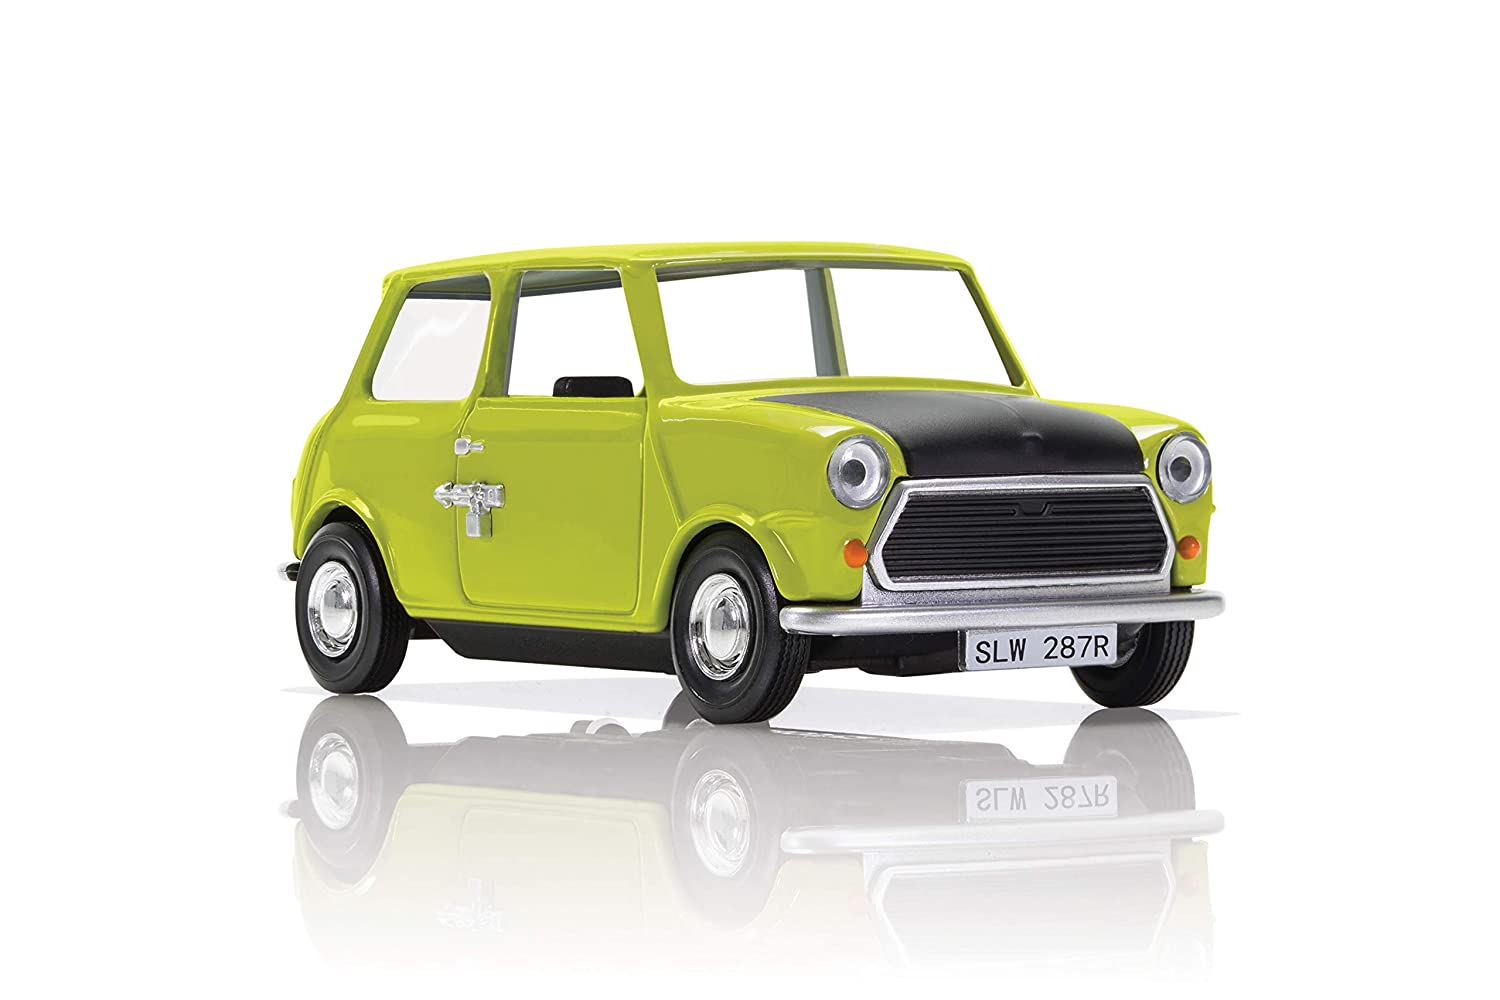 Mini 1000 1976 Diecast Model Car from Mr Bean